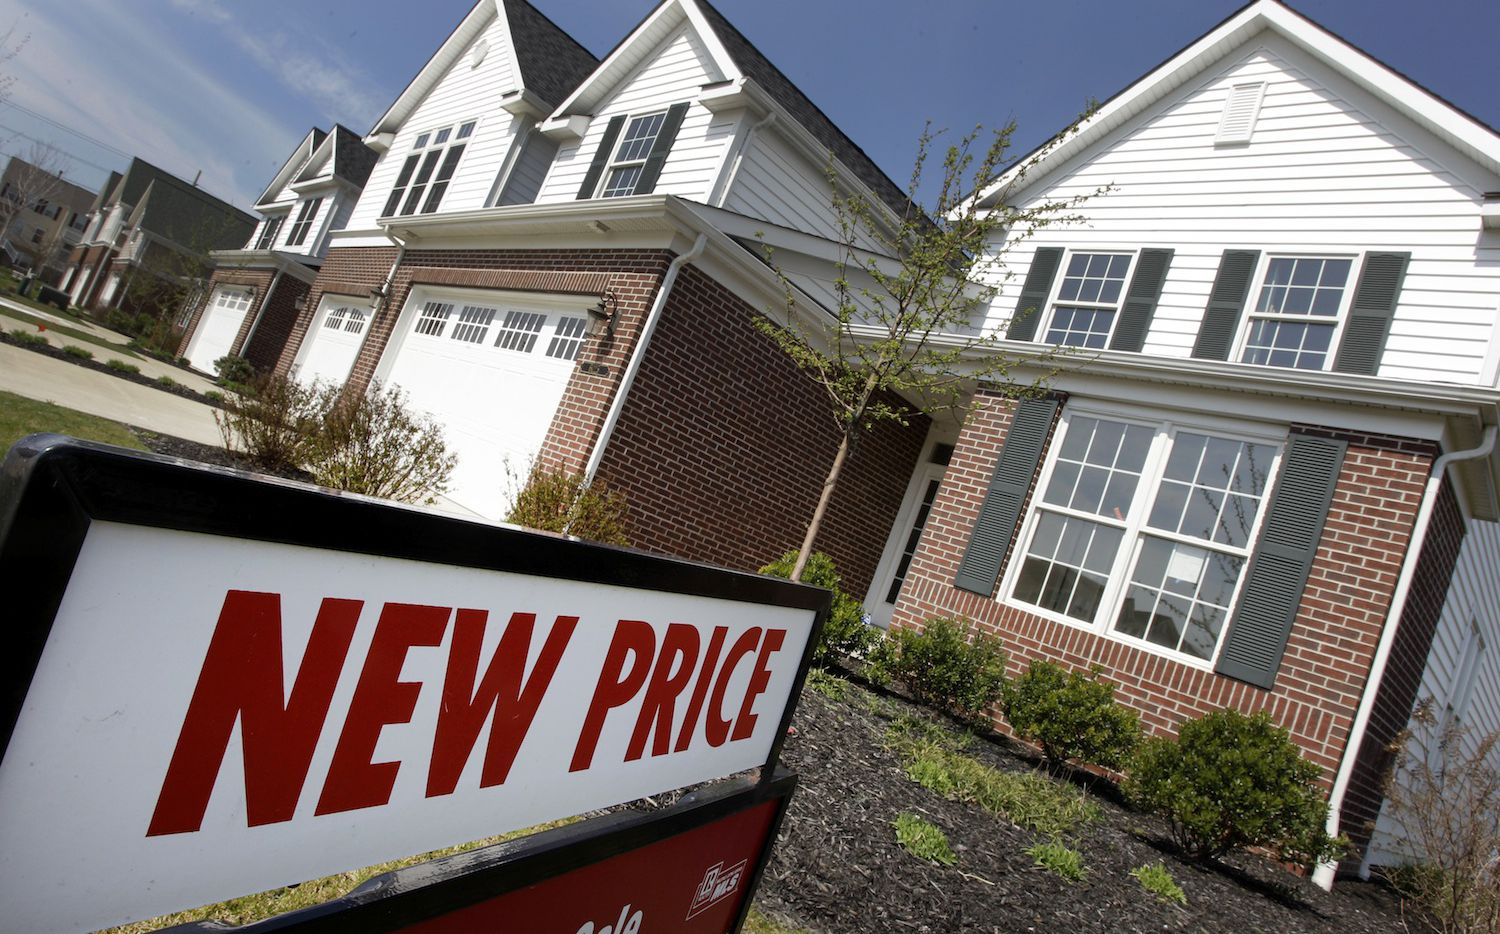 Home prices were higher in more than 90 percent of the U.S. cities the National Association of Realtors surveyed in the third quarter.